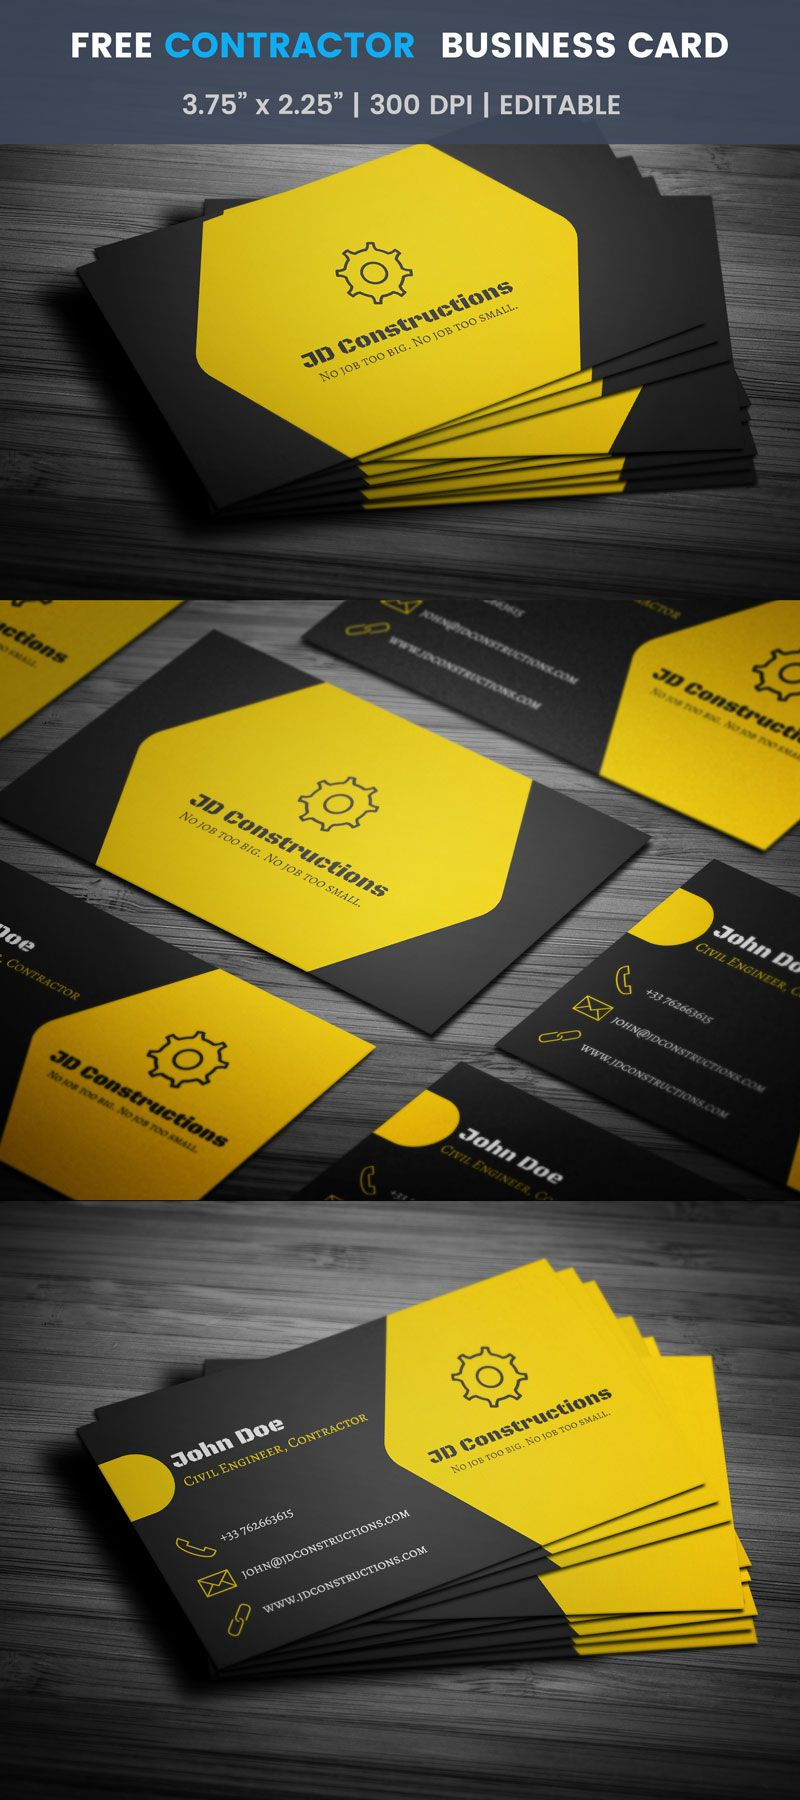 Civil Engineer And Contractor Business Card Full Preview Company Business Cards Examples Of Business Cards Construction Business Cards